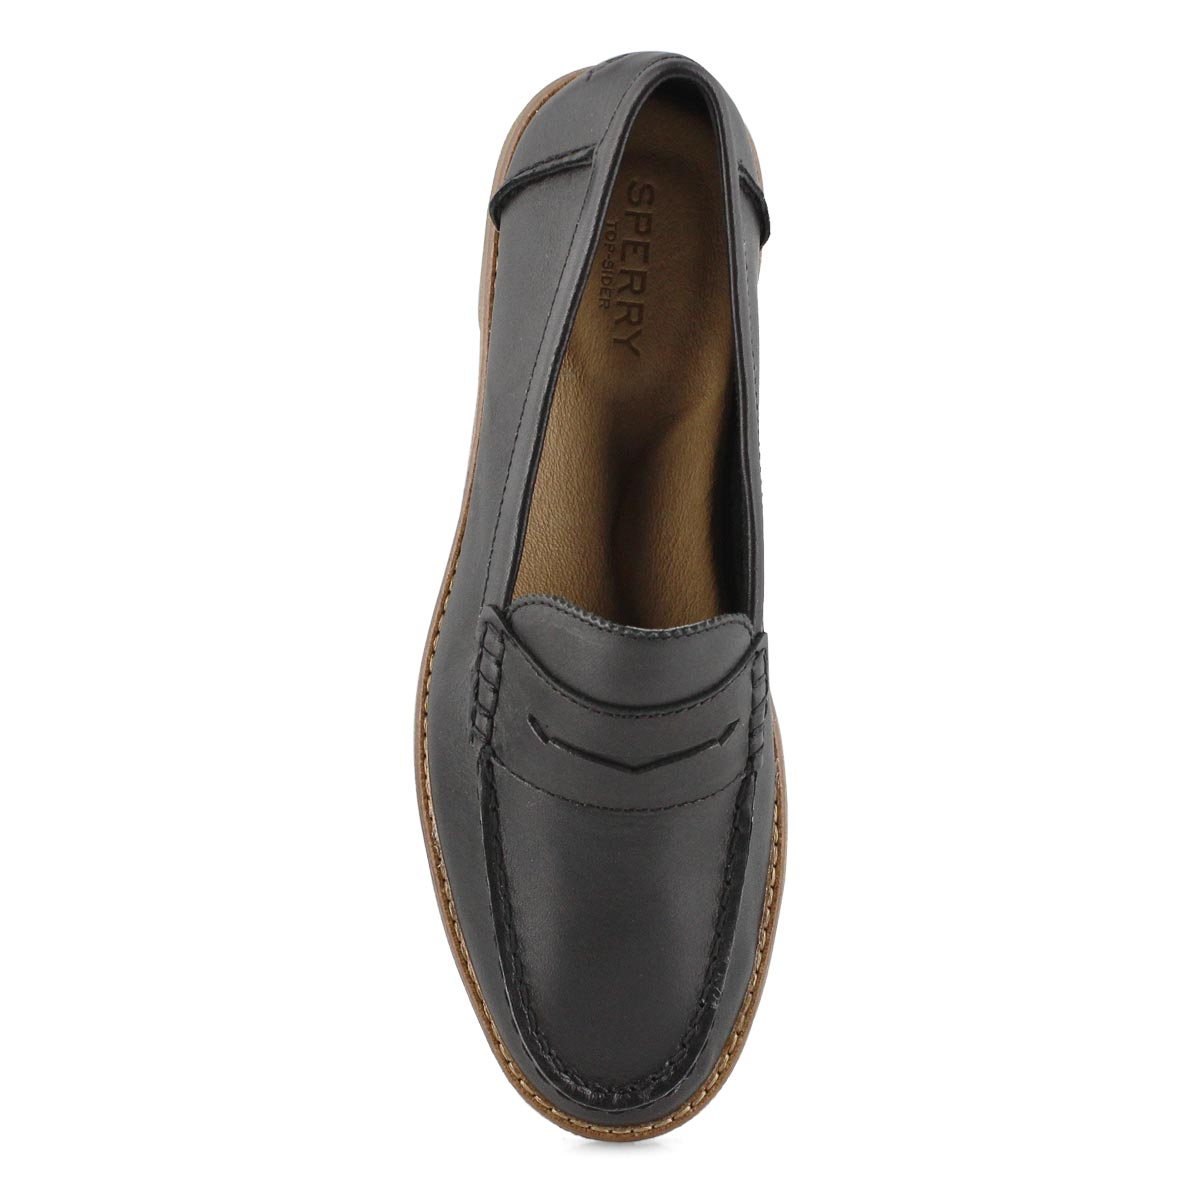 Lds Seaport Penny black casual loafer